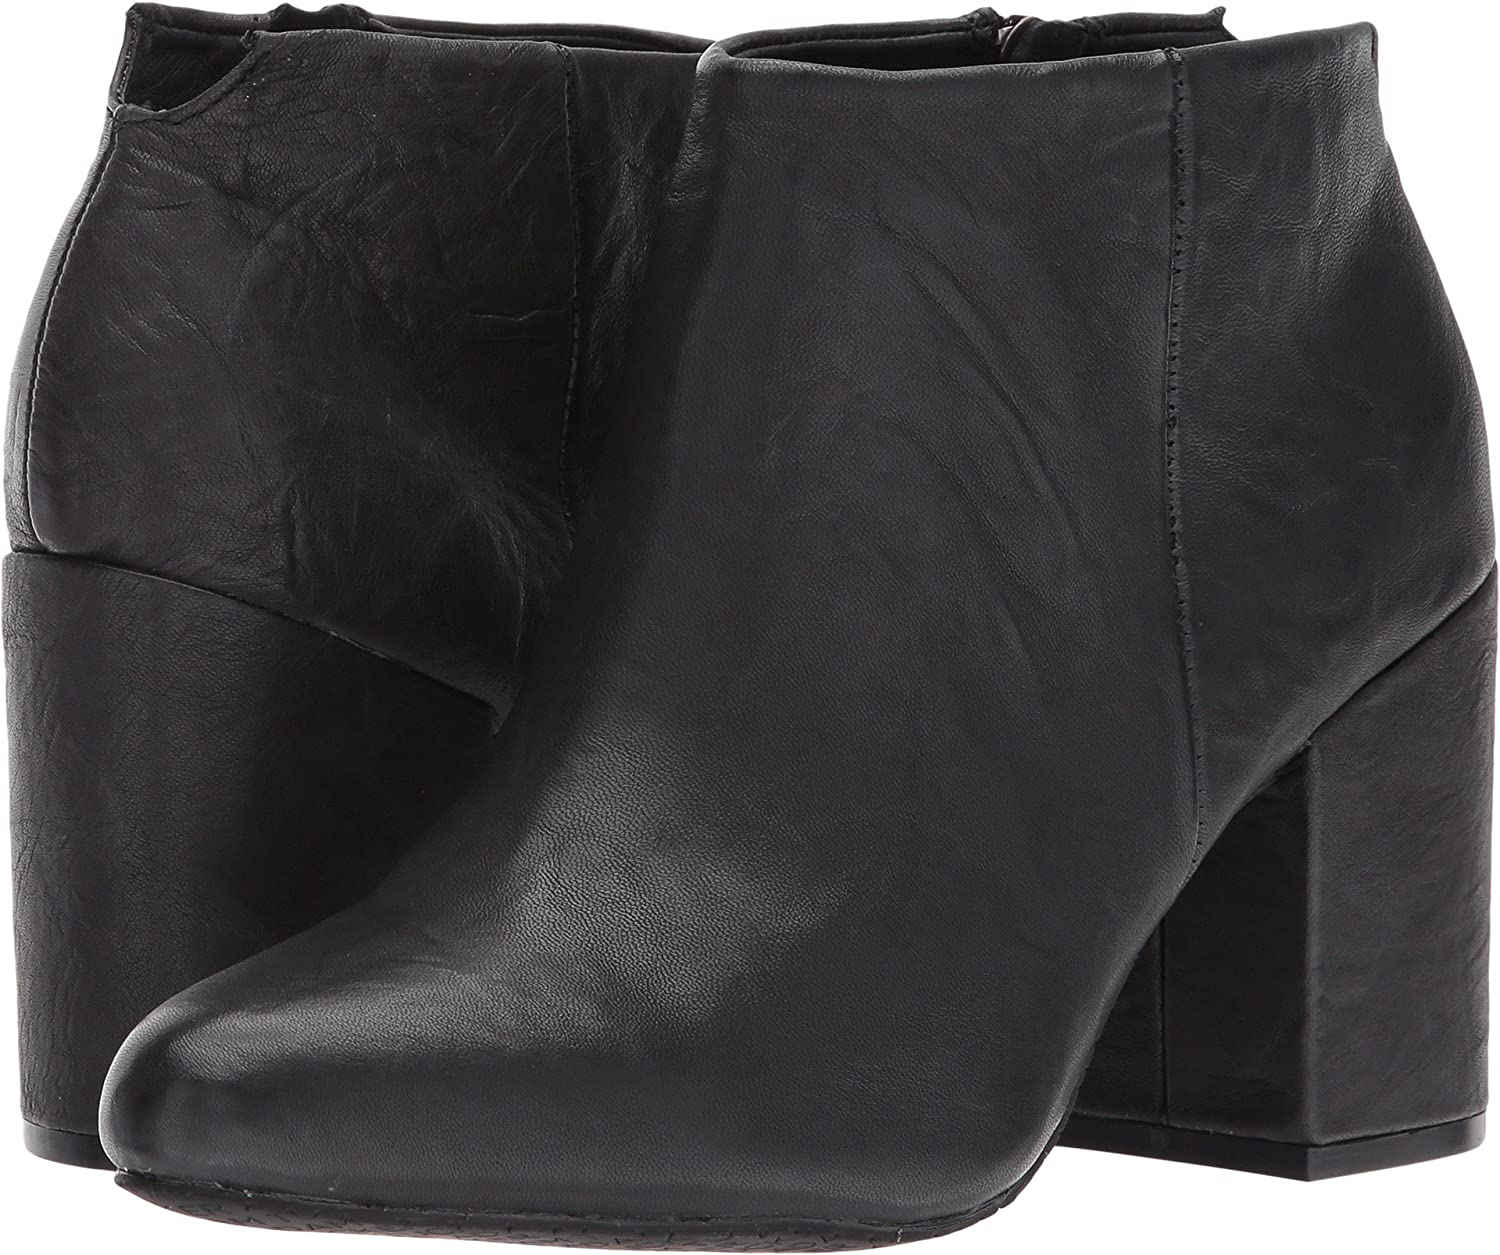 Me Too Womens Zia B07239JDKB 8.5 B(M) US|Black Crinkle Leather